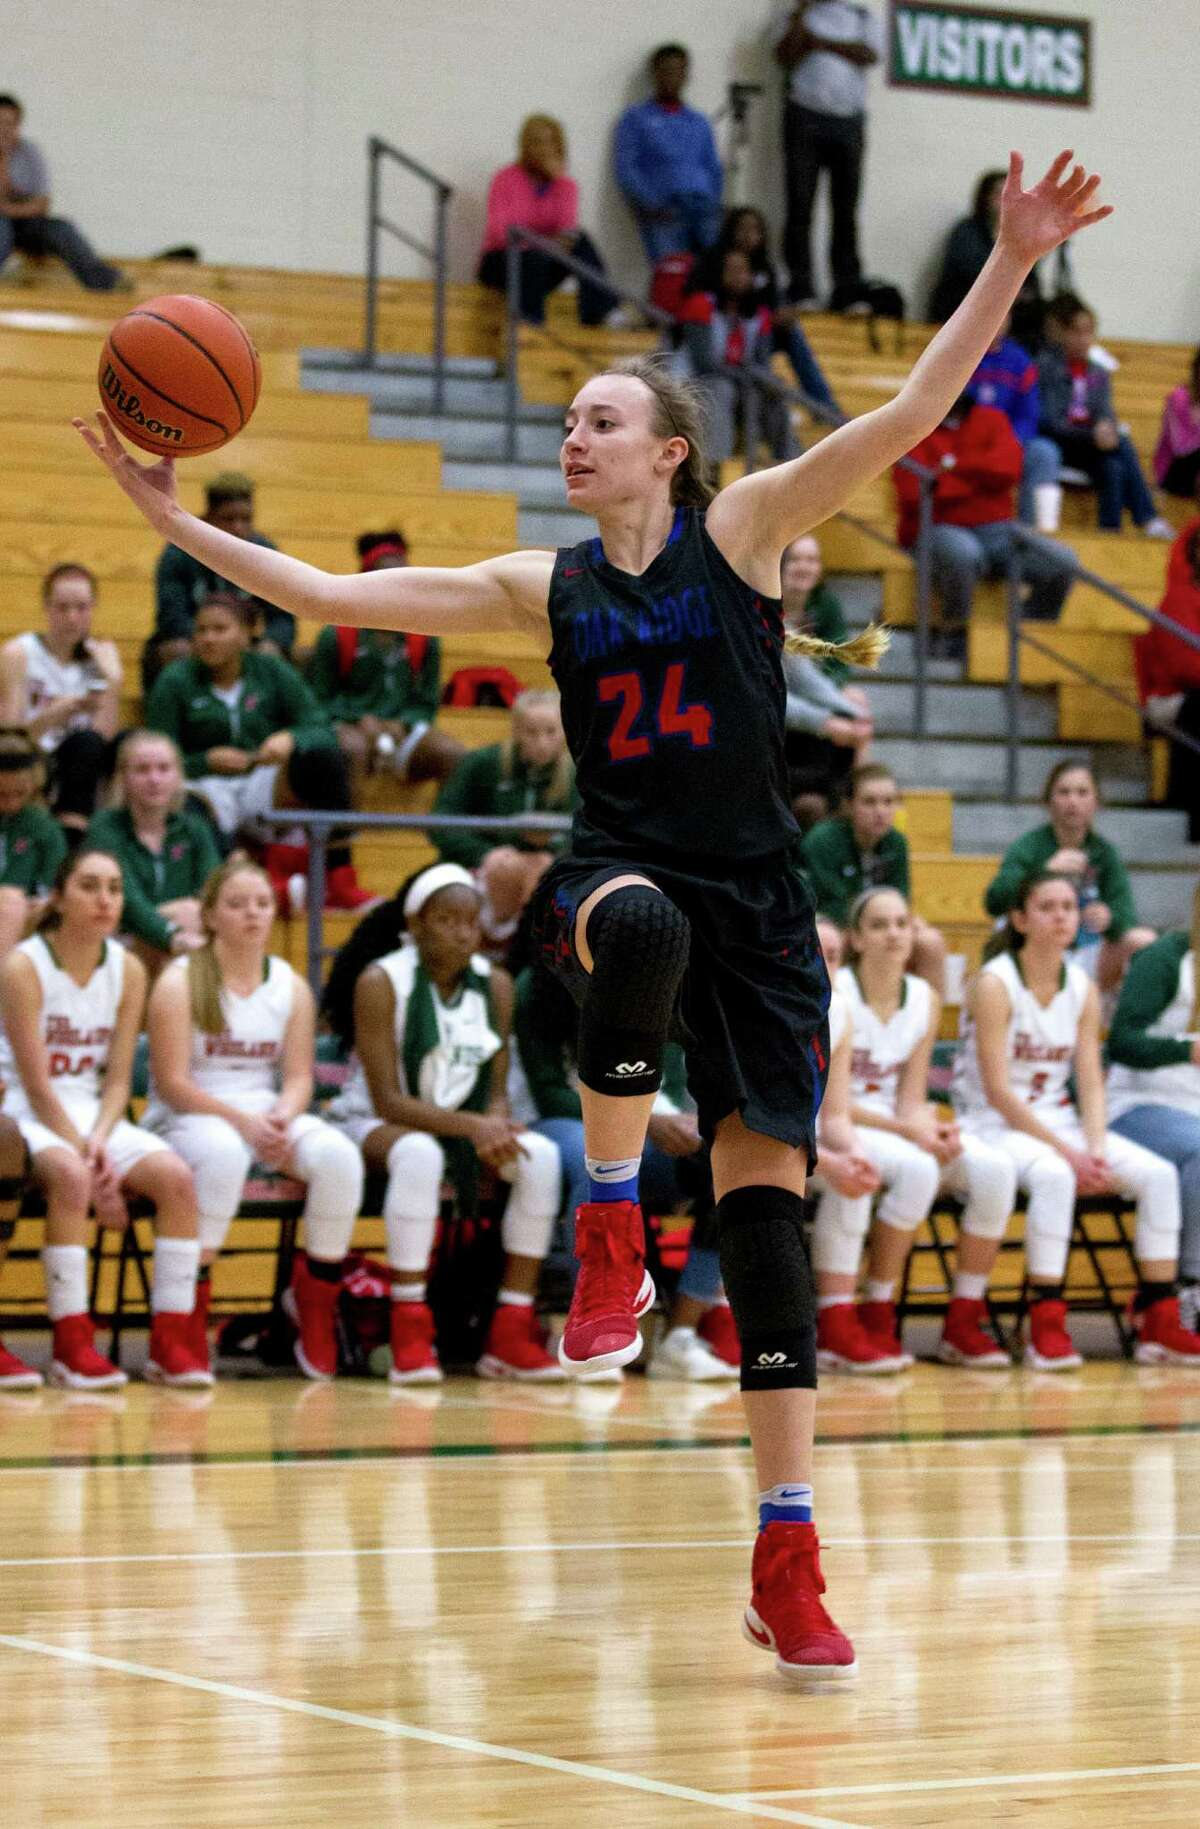 Oak Ridge power forward LaDawn Carls (24) controls a pass during the second quarter of a District 12-6A high school girls basketball game at The Woodlands High School Friday, Feb. 3, 2017, in The Woodlands. Oak Ridge defeated The Woodlands 57-47.